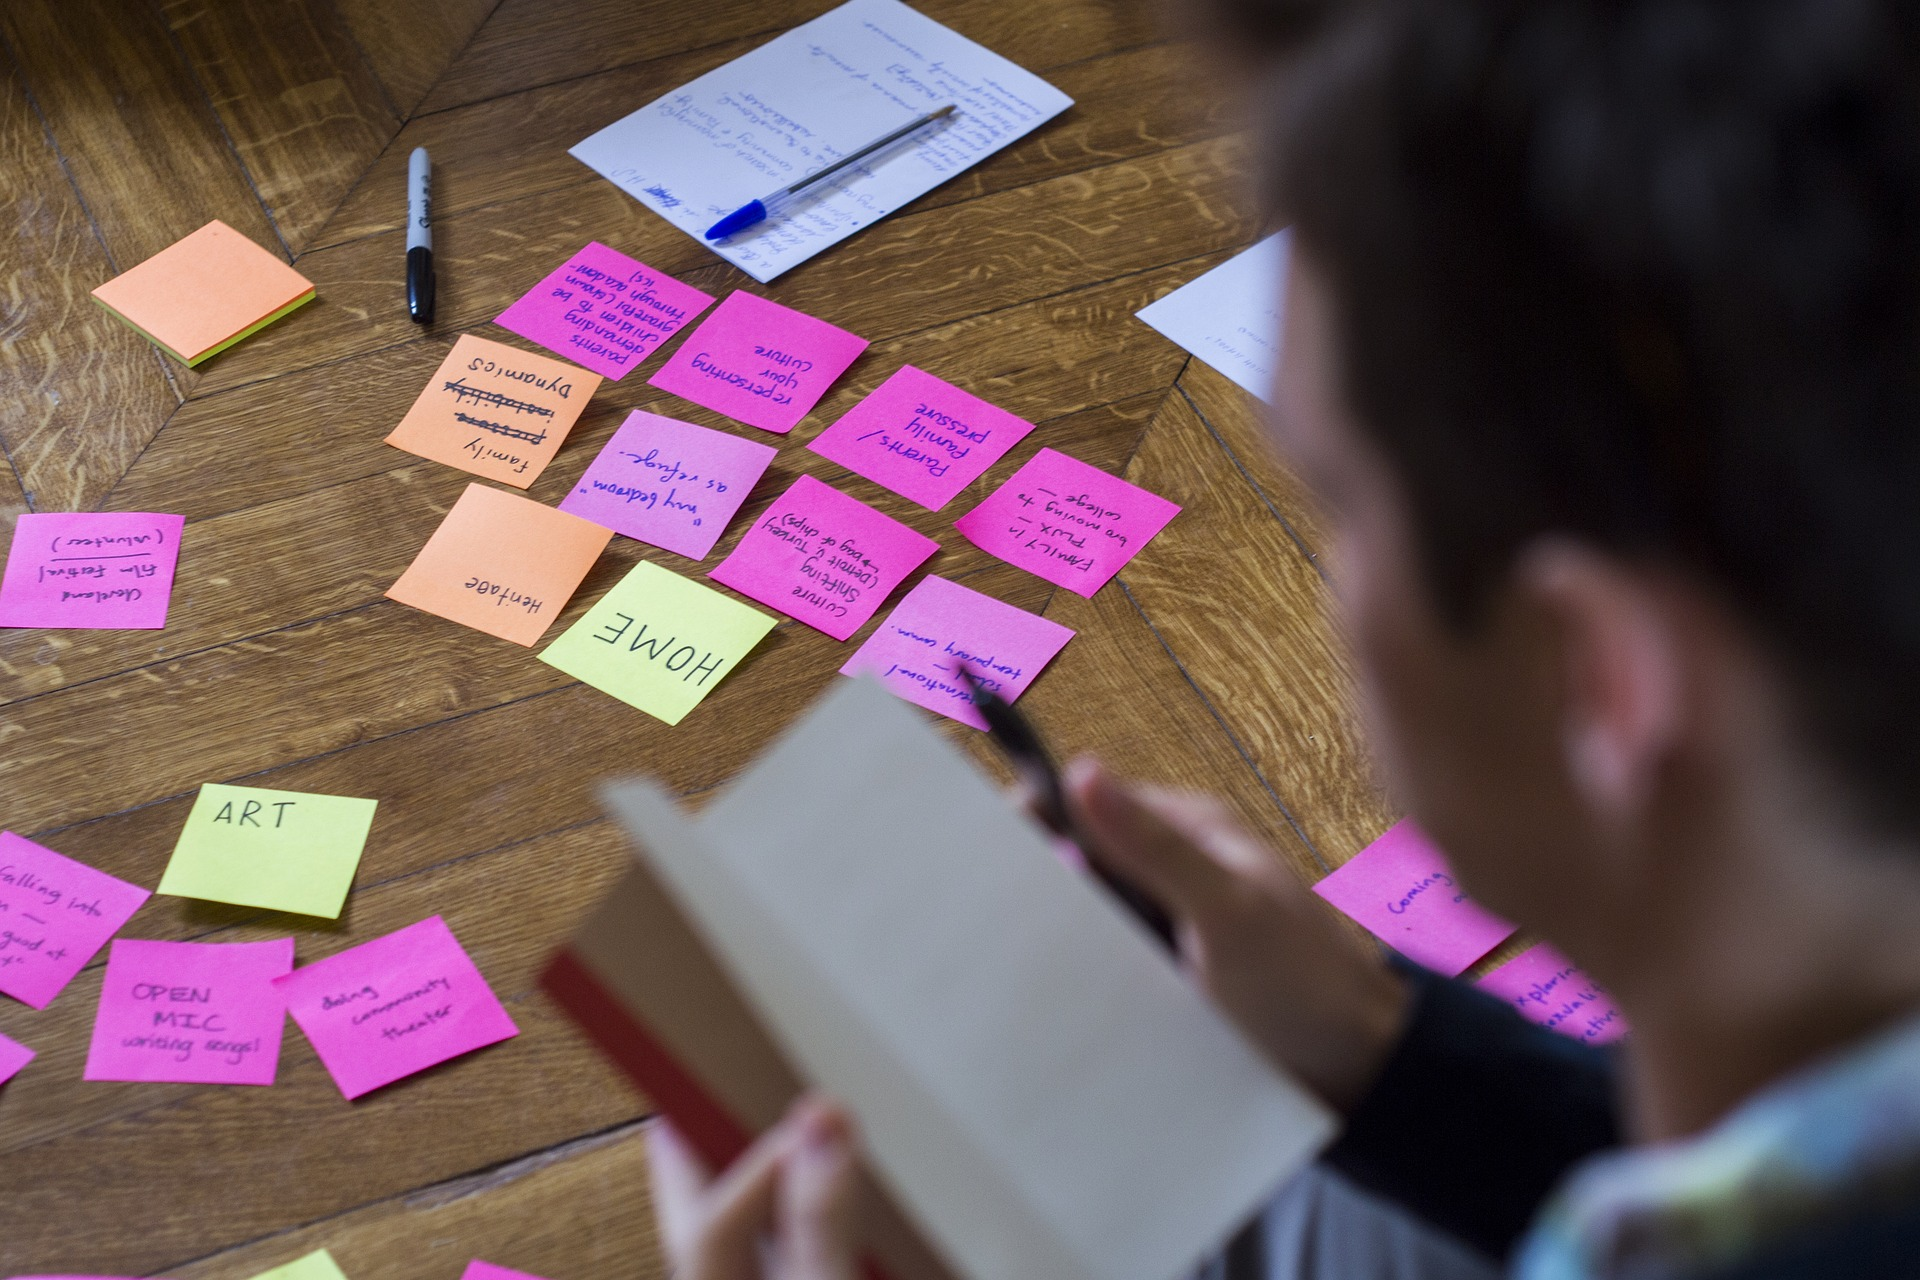 A man reading a book in front a table of post-it notes